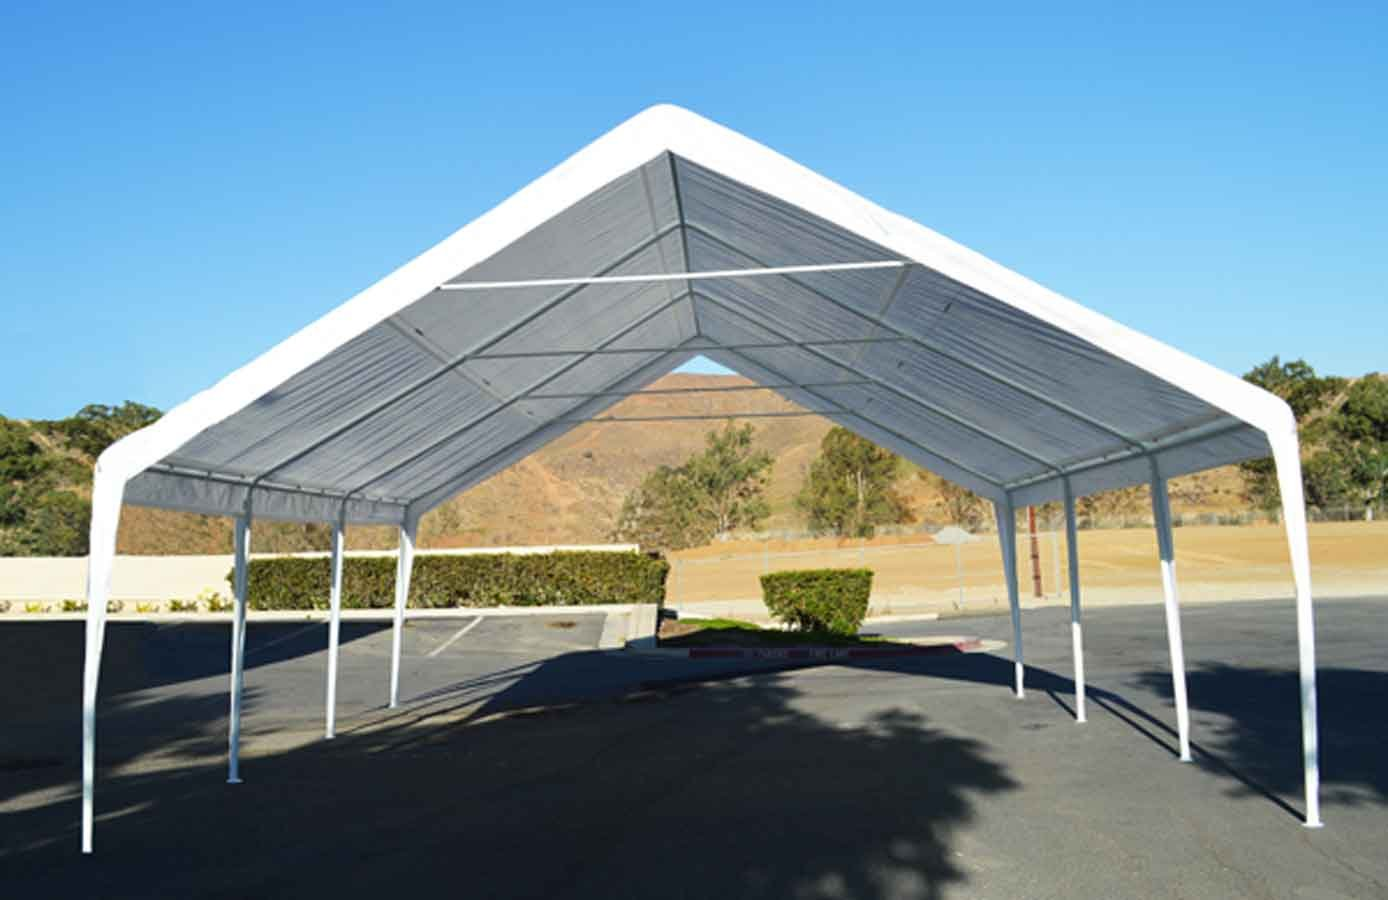 Impact Canopy EVENT CANOPY - 20'x20'x12' (8 legs) Portable Carport Wedding Party Canopy Shelter